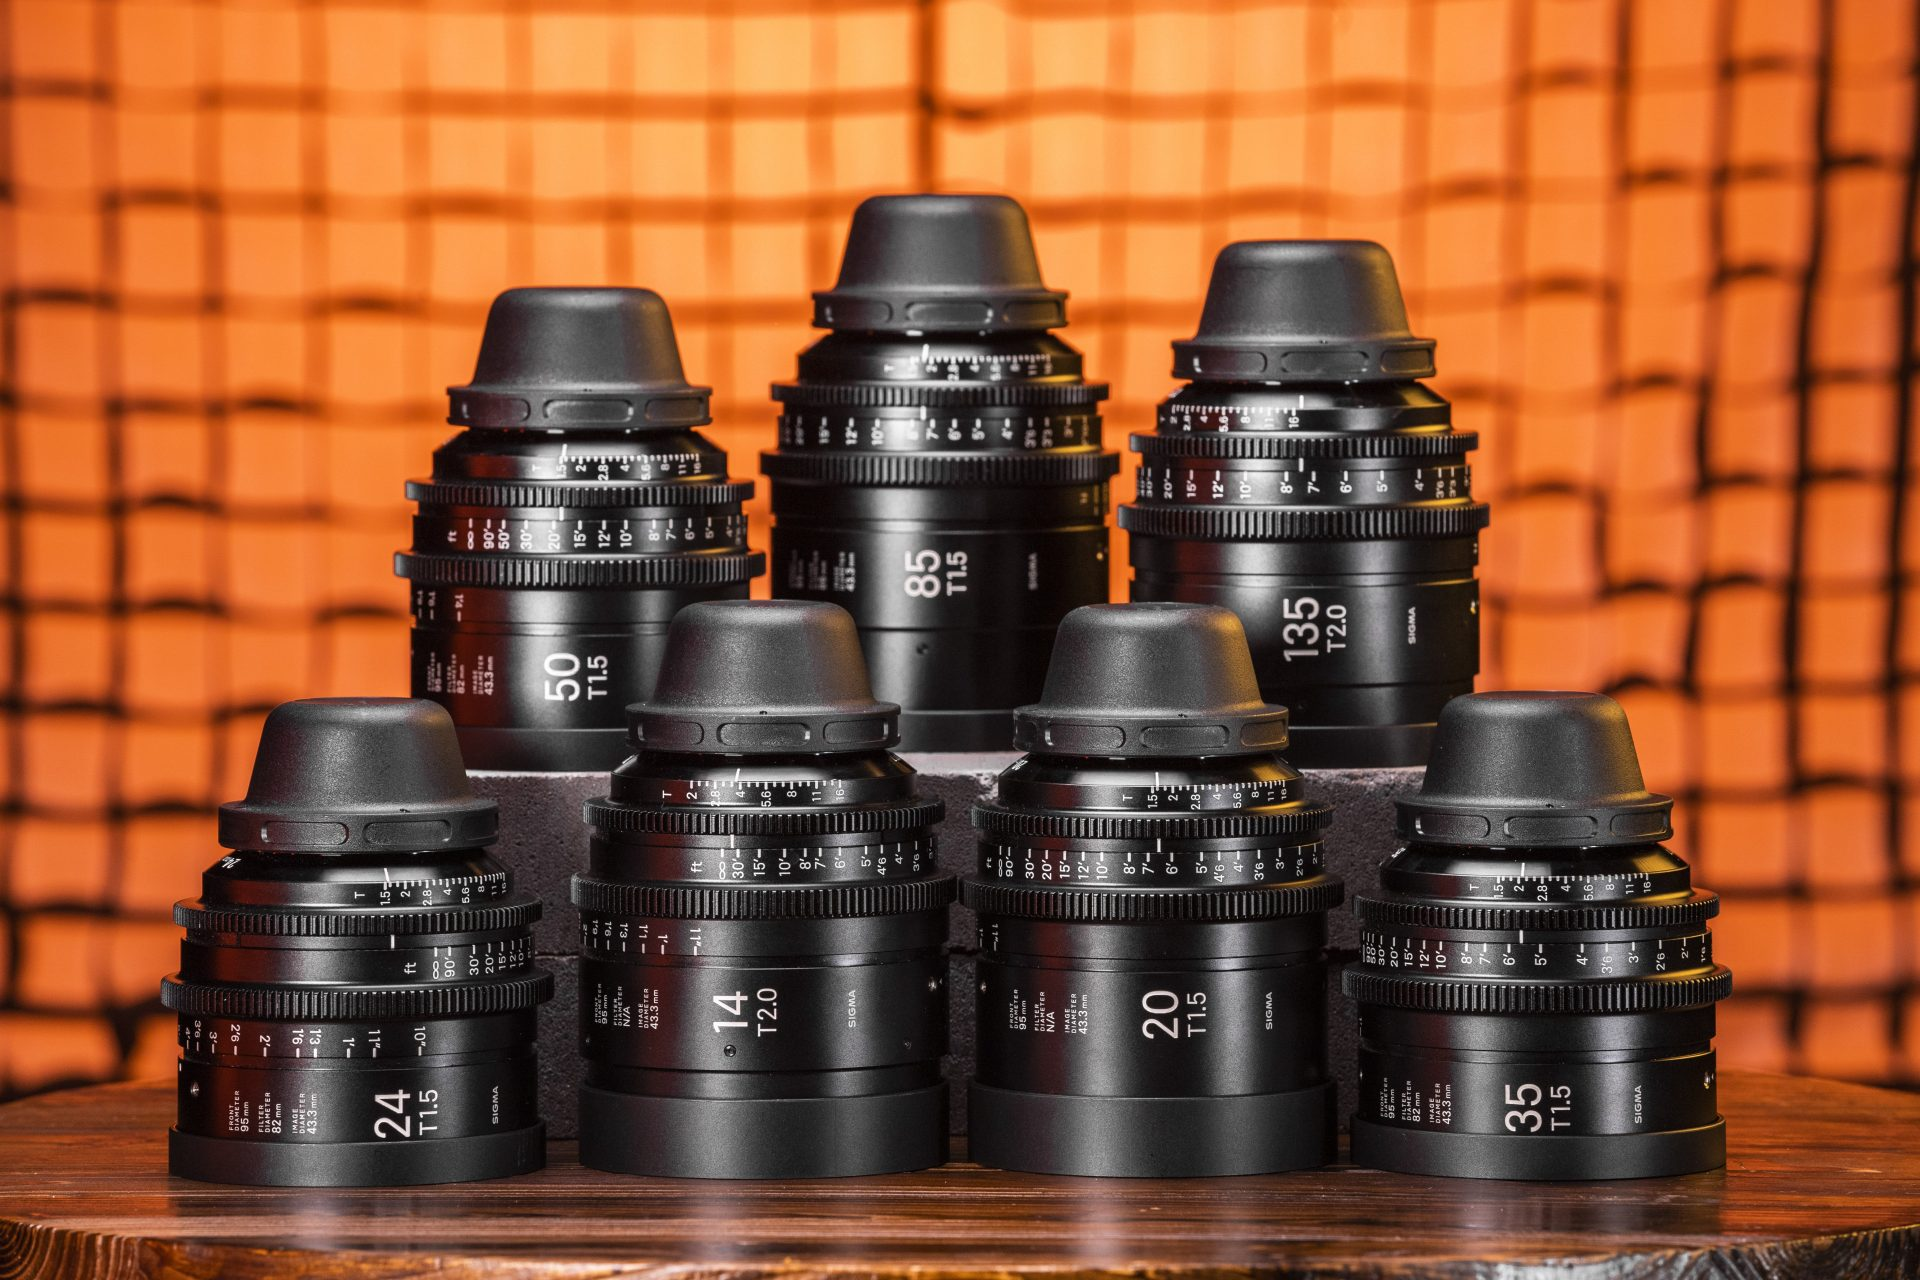 Sigma T1.5 FF High-Speed 7 Prime Lens Kit